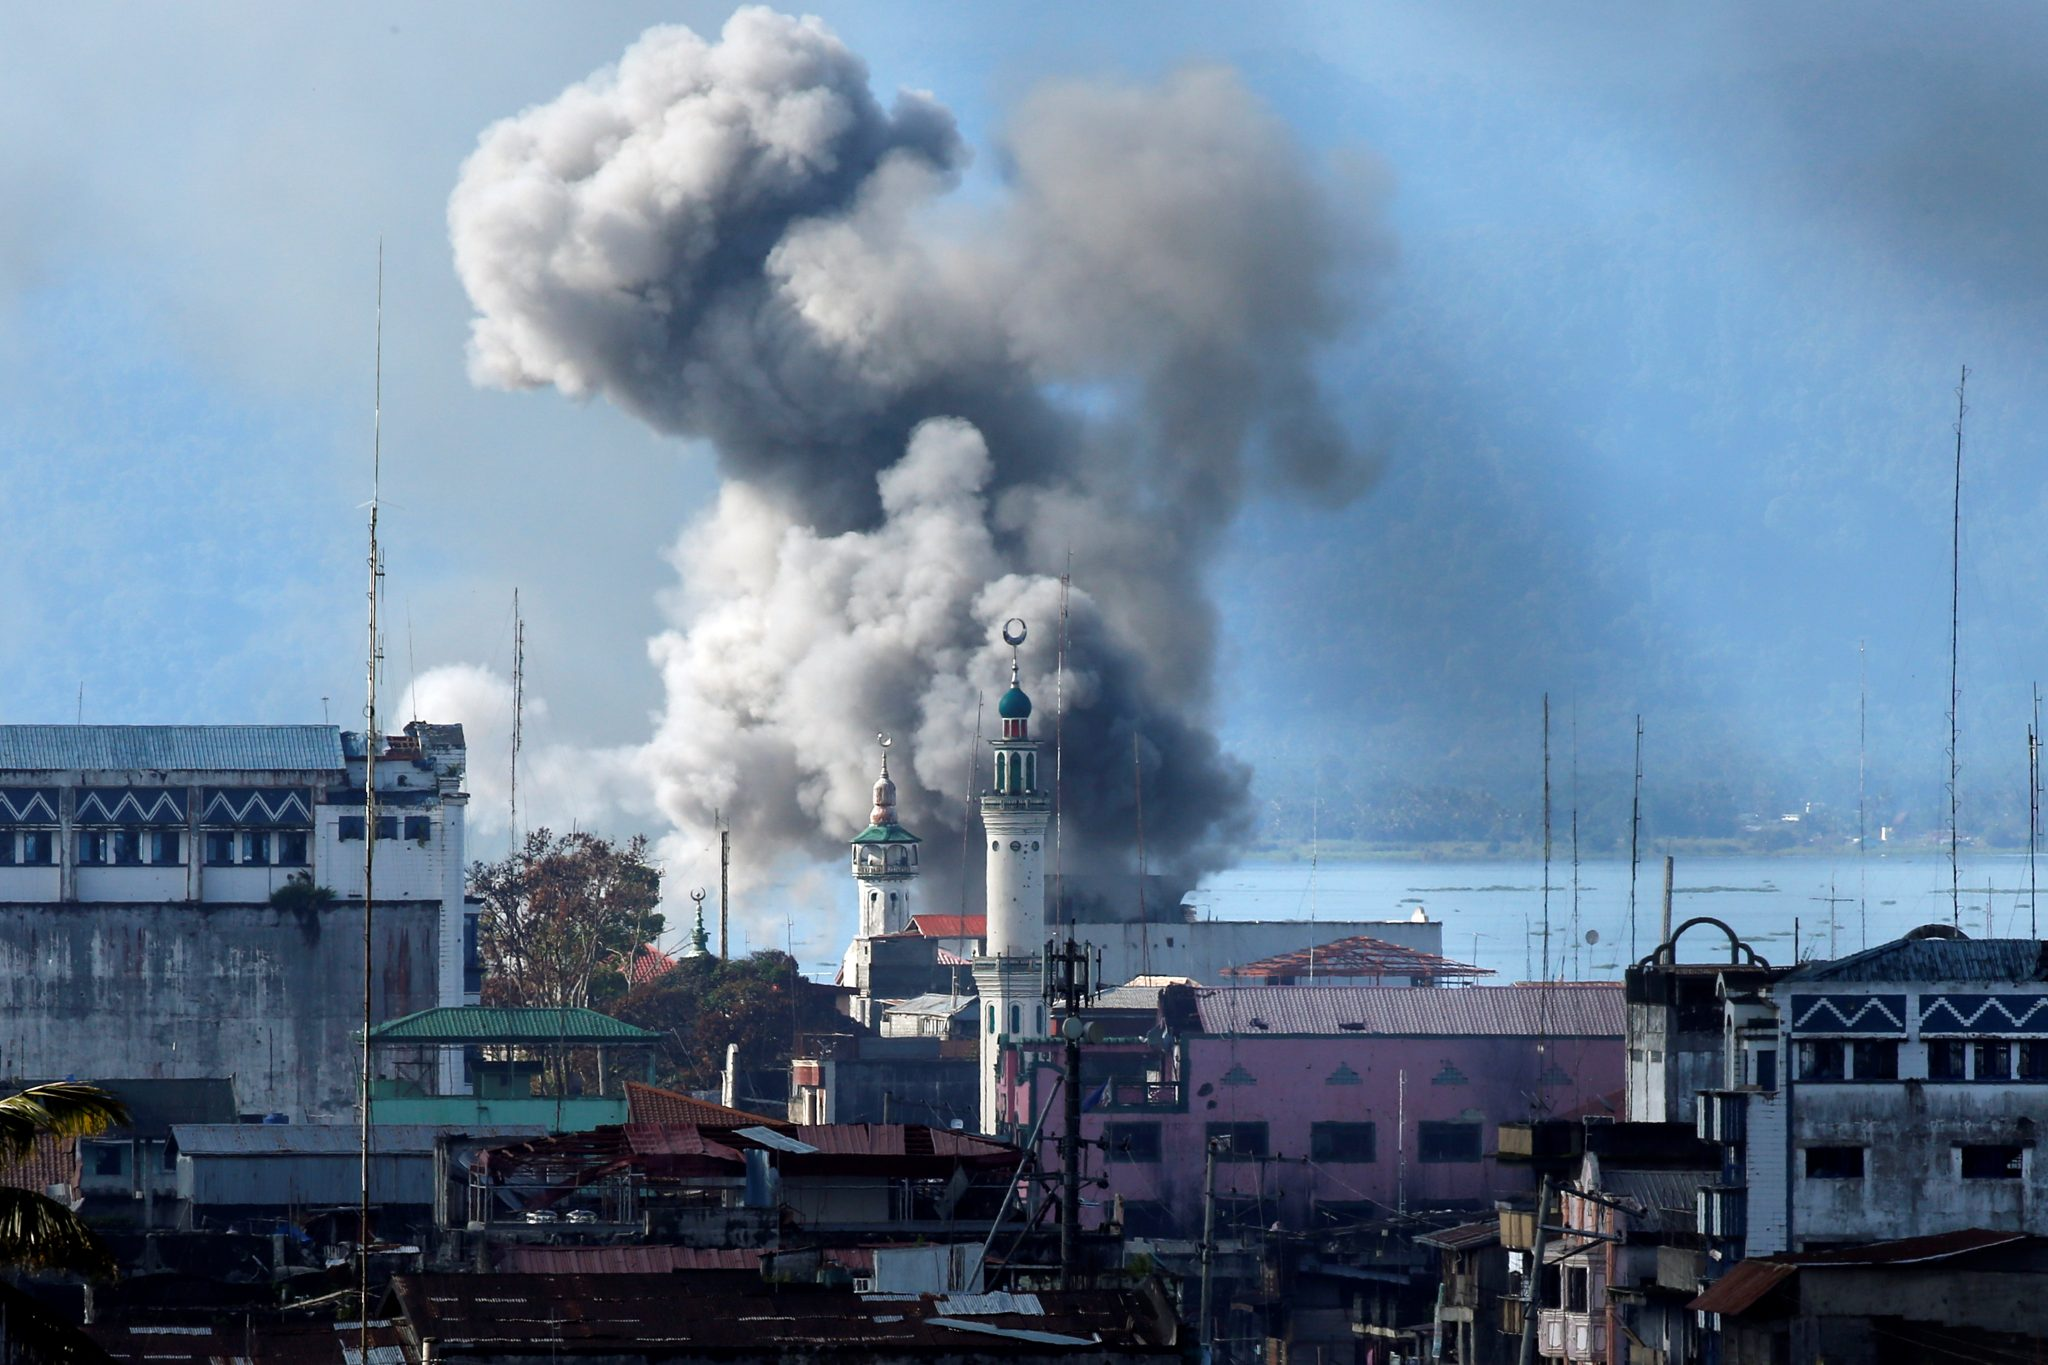 An explosion is seen after a Philippines army aircraft released a bomb during an airstrike in Marawi city | REUTERS